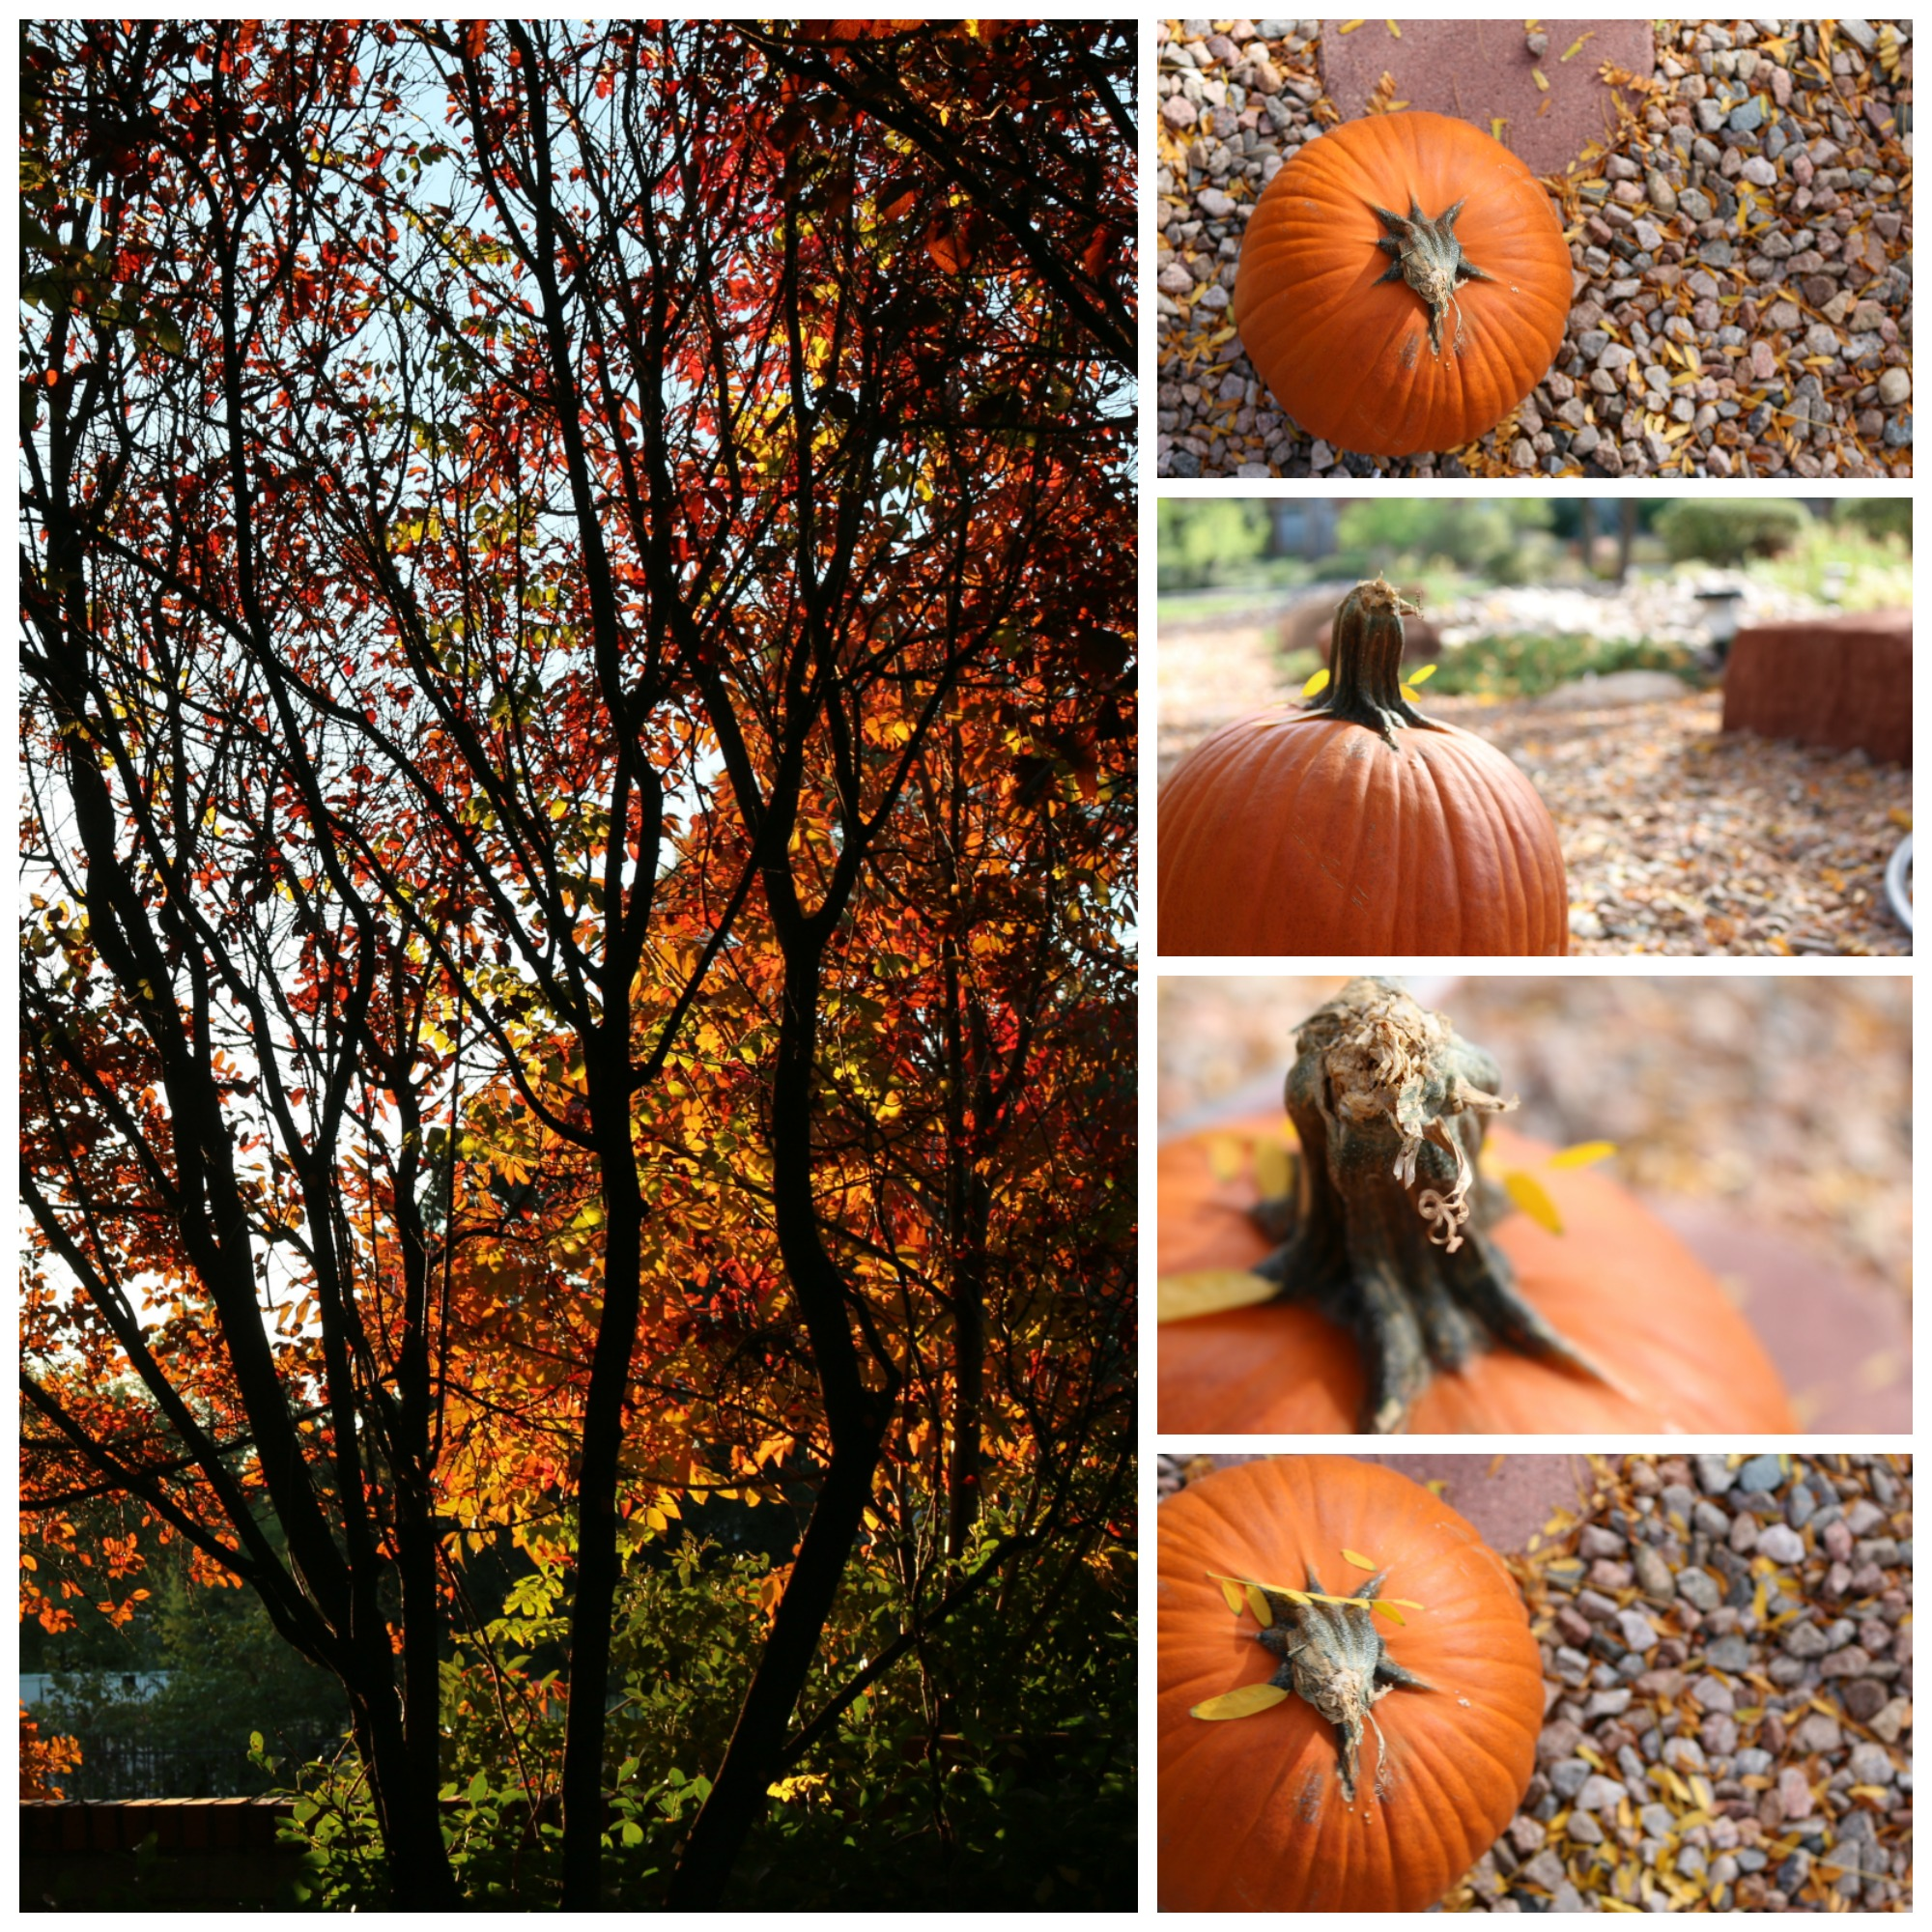 The collage is a collection of my daughter's images. She has quite an eye for a twelve year old.